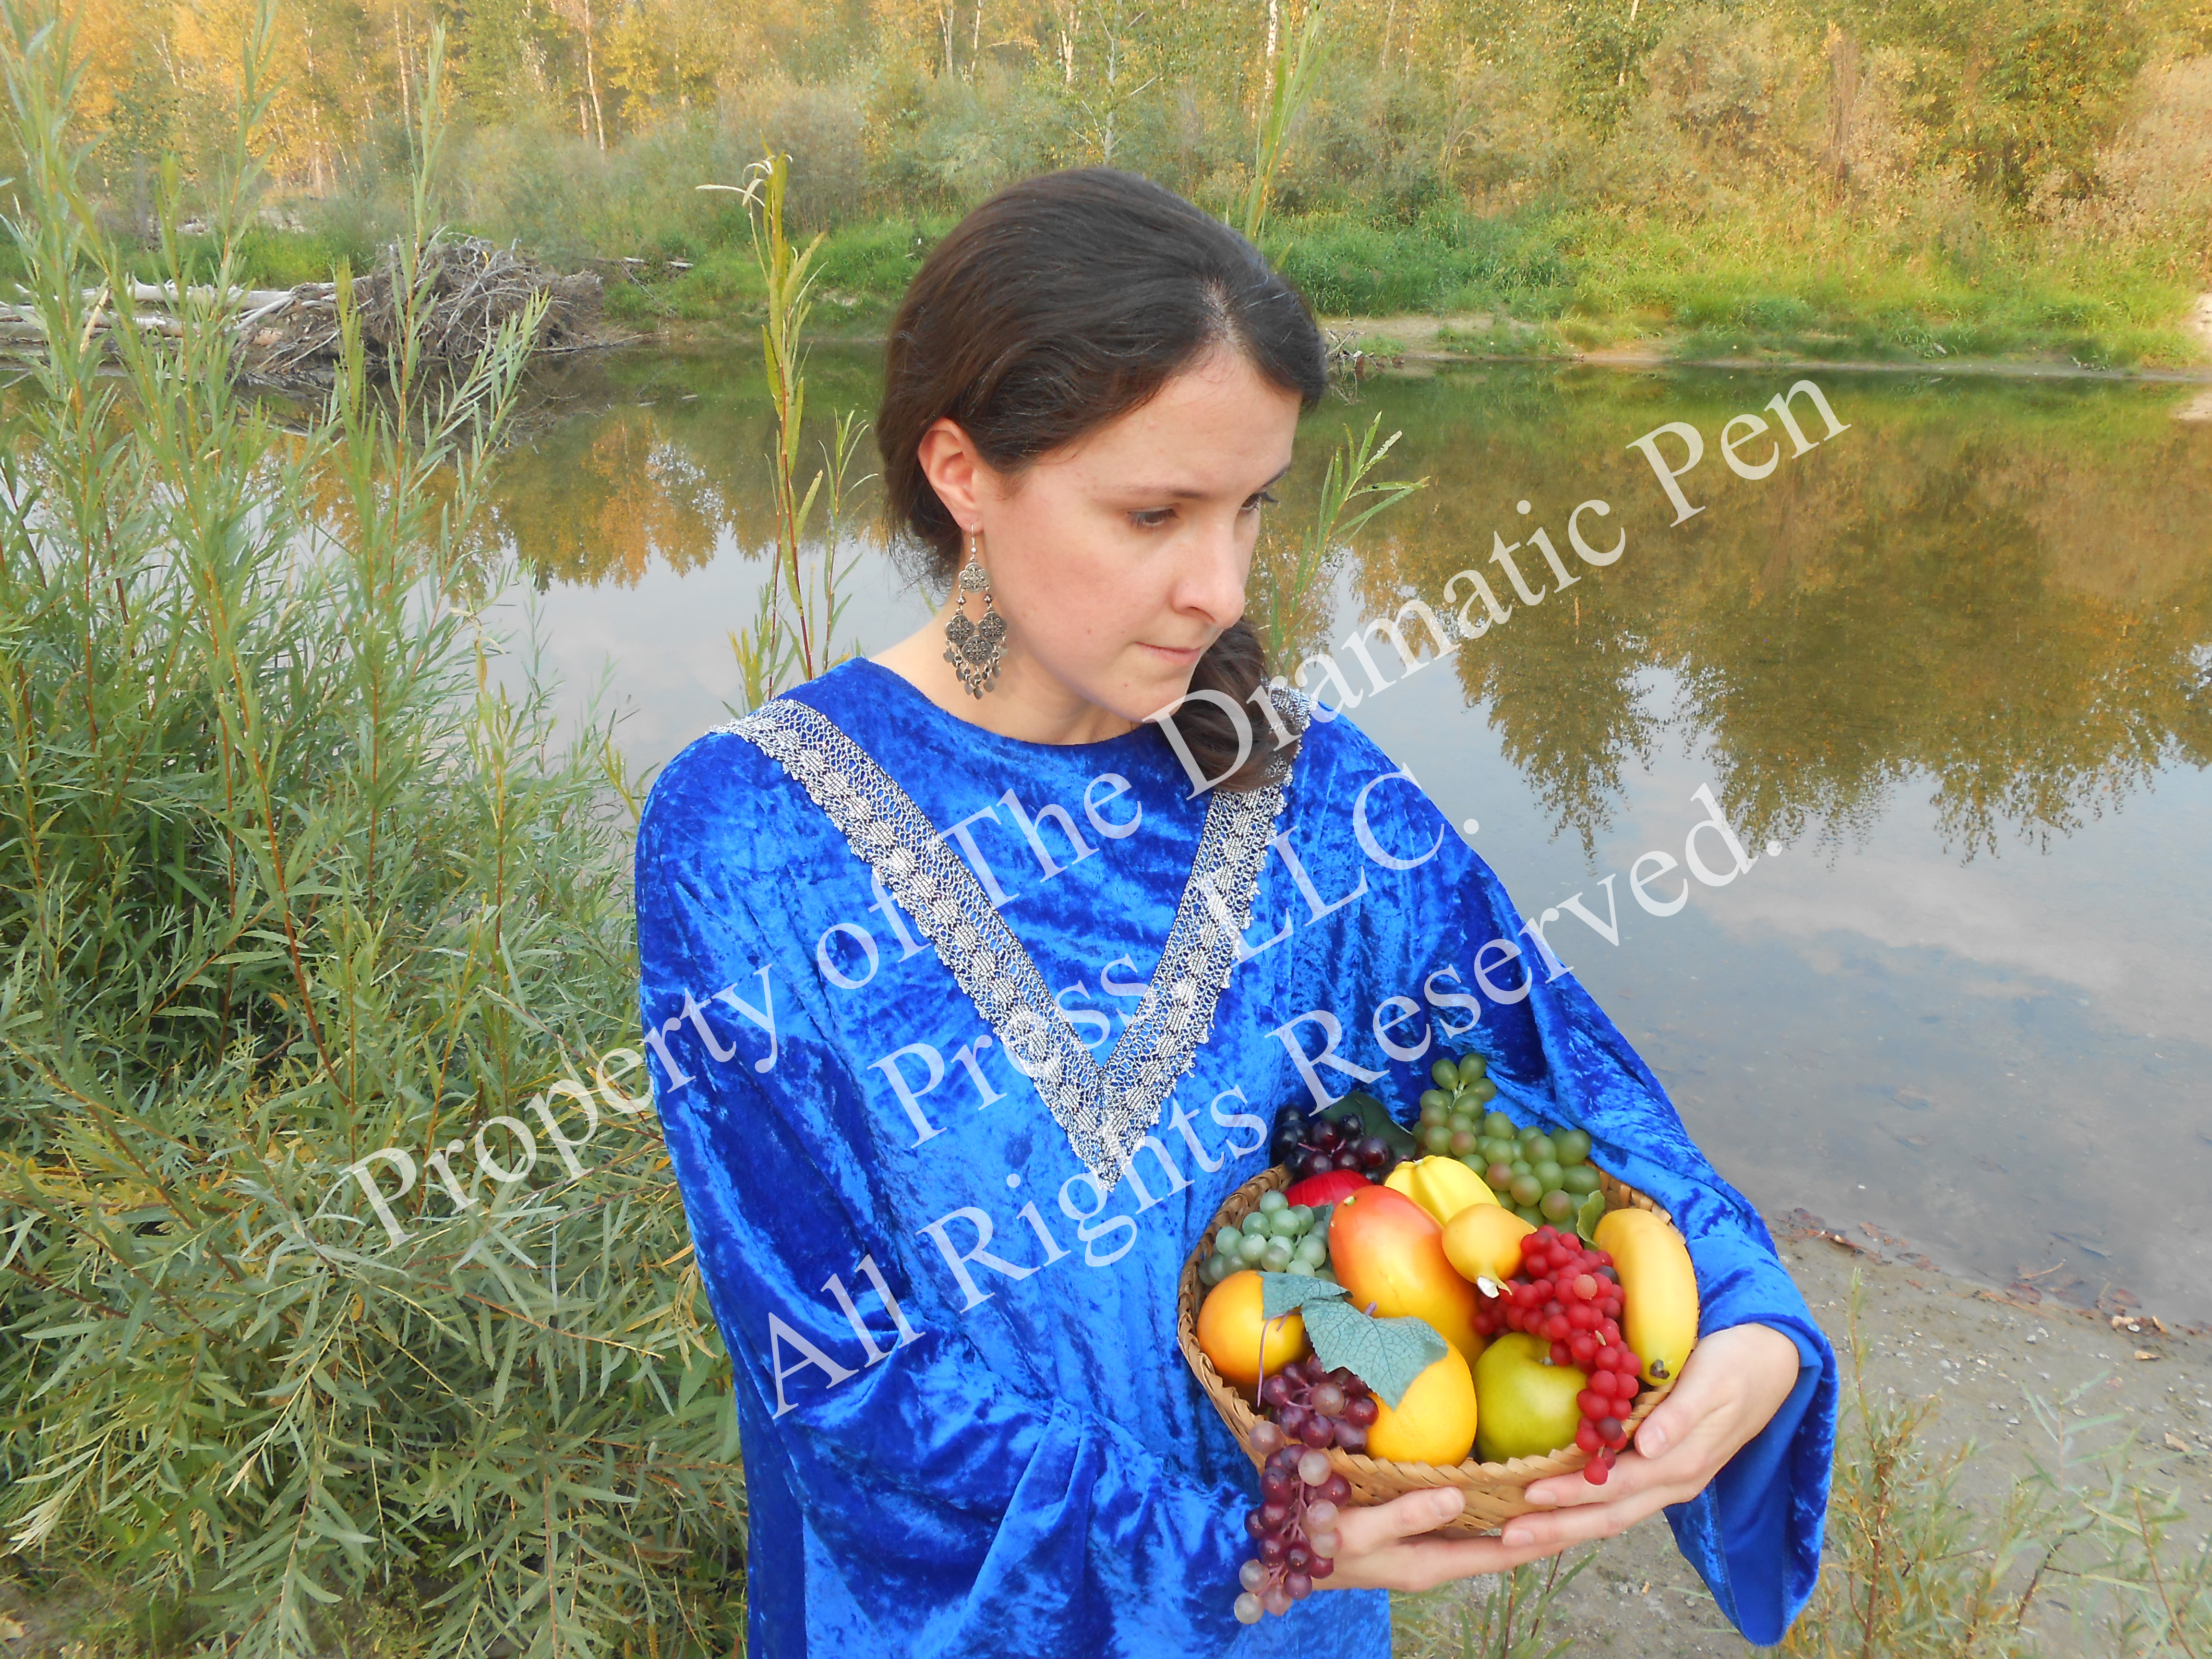 Biblical Woman with Fruit by Water